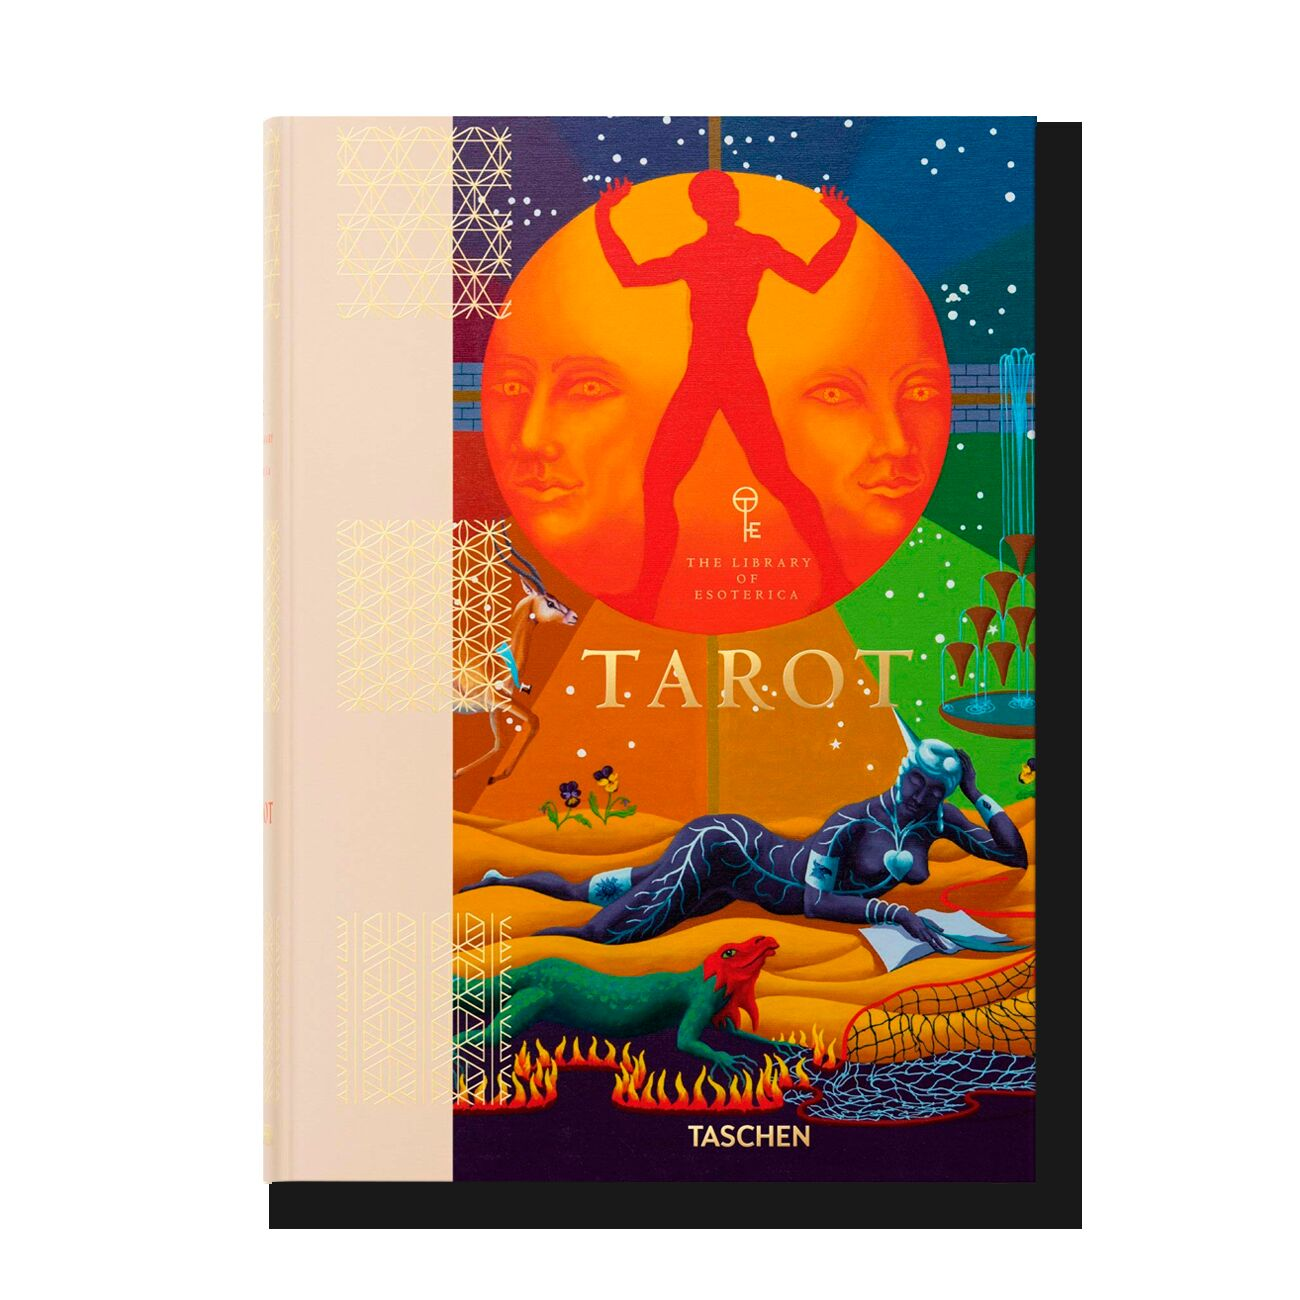 Tarot. The Library of Esoterica